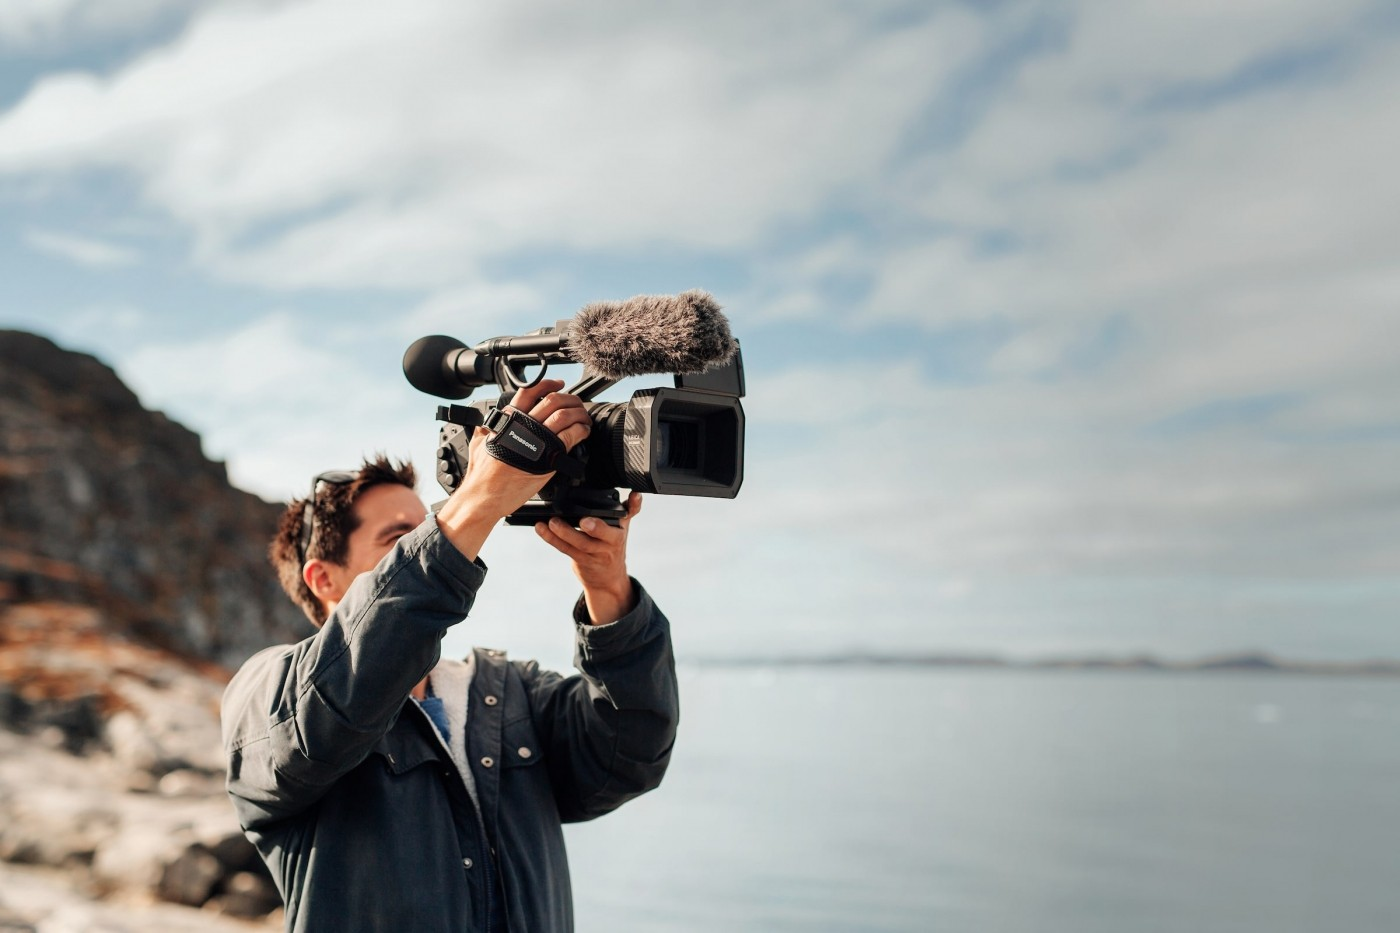 Behind the scenes shot of videographer Aningaaq Rosing Carlsen filming the fjord in Nuuk in Greenland. Photo by Rebecca Gustafsson - Visit Greenland